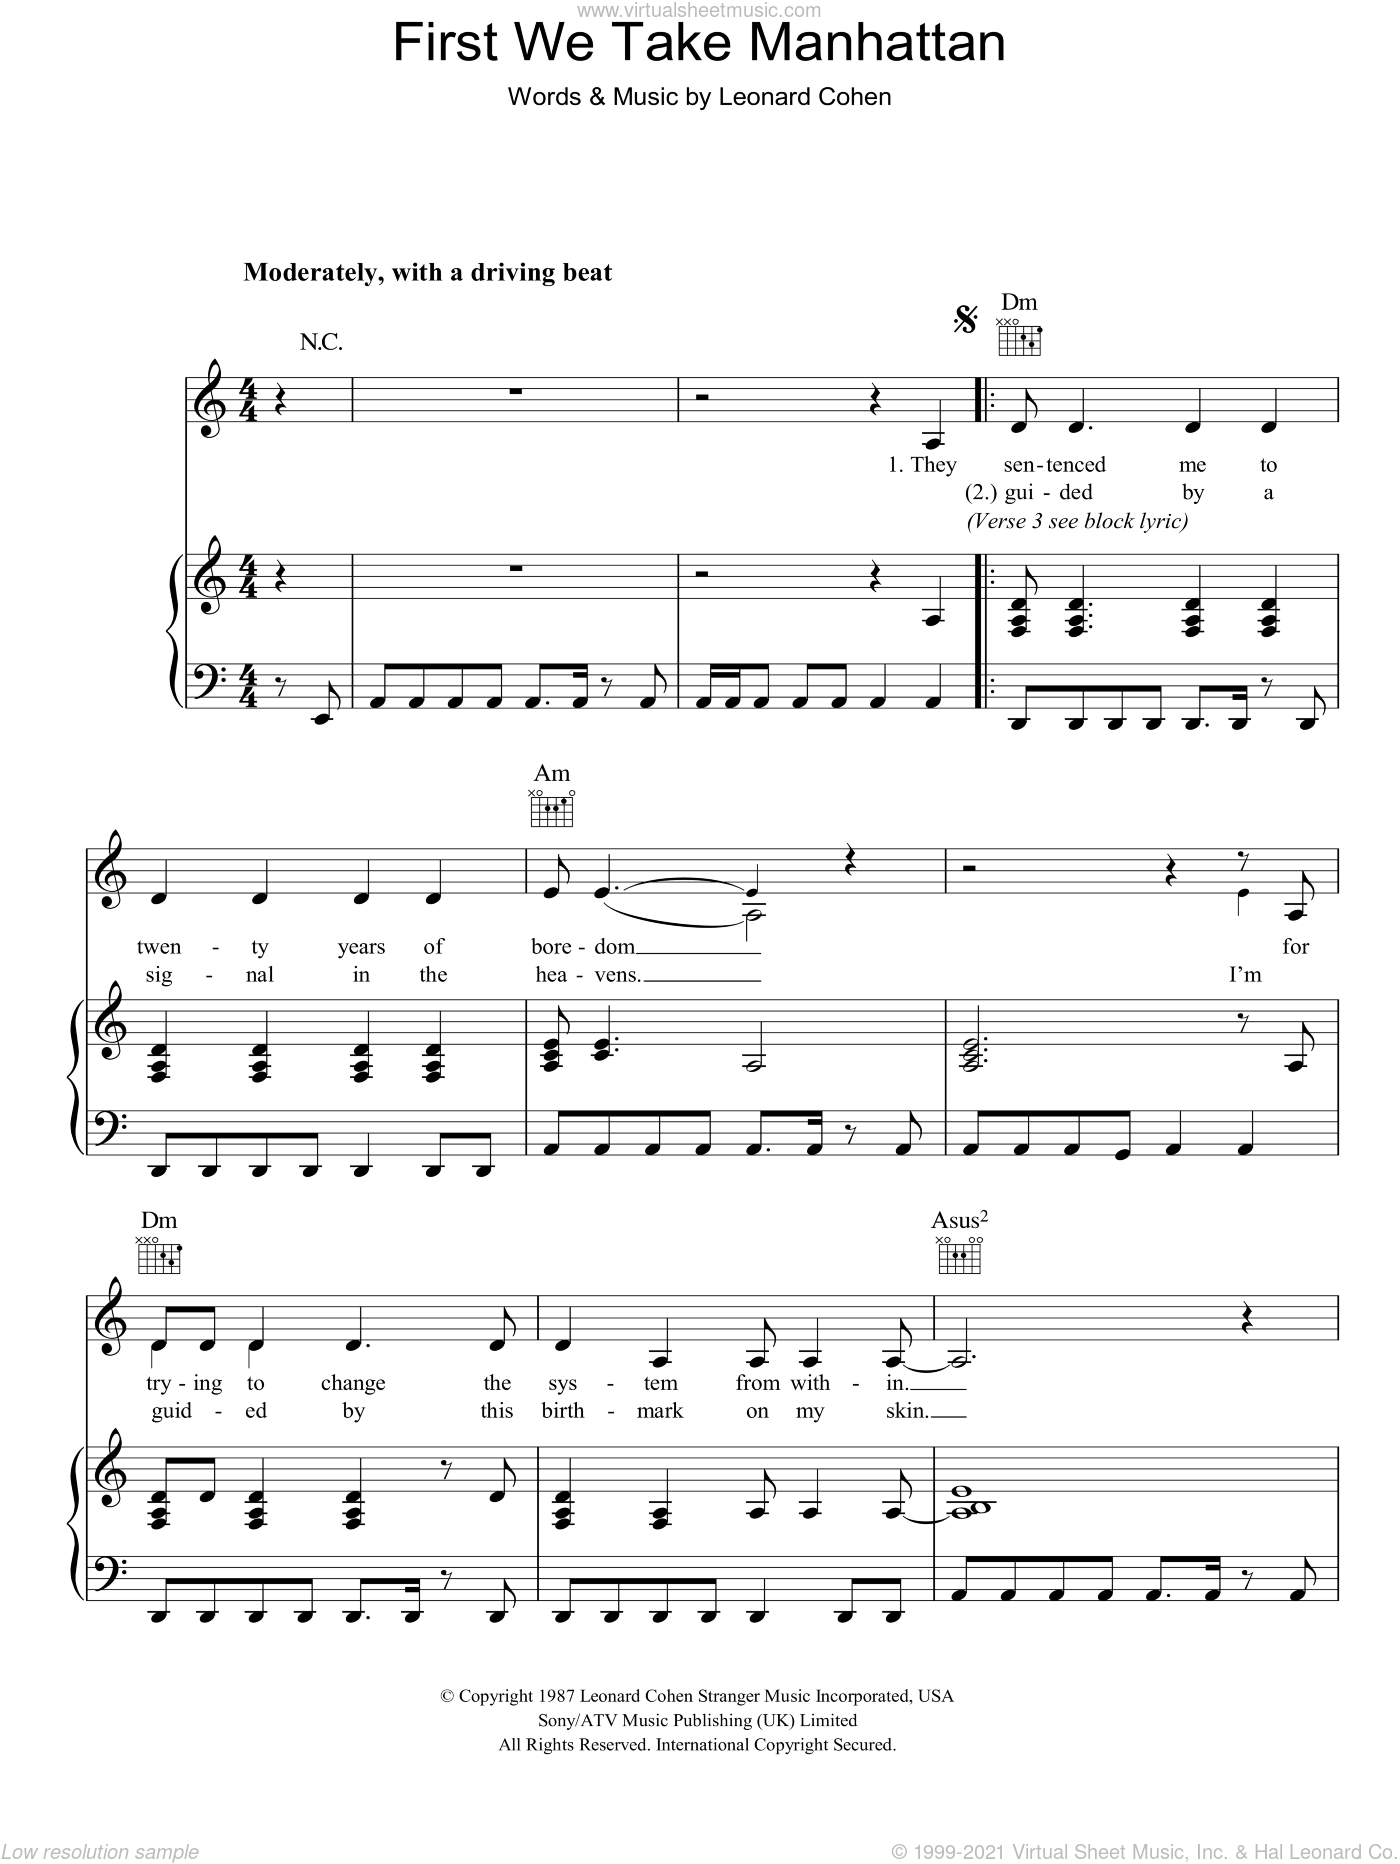 First We Take Manhattan sheet music for voice, piano or guitar by Leonard Cohen, intermediate skill level